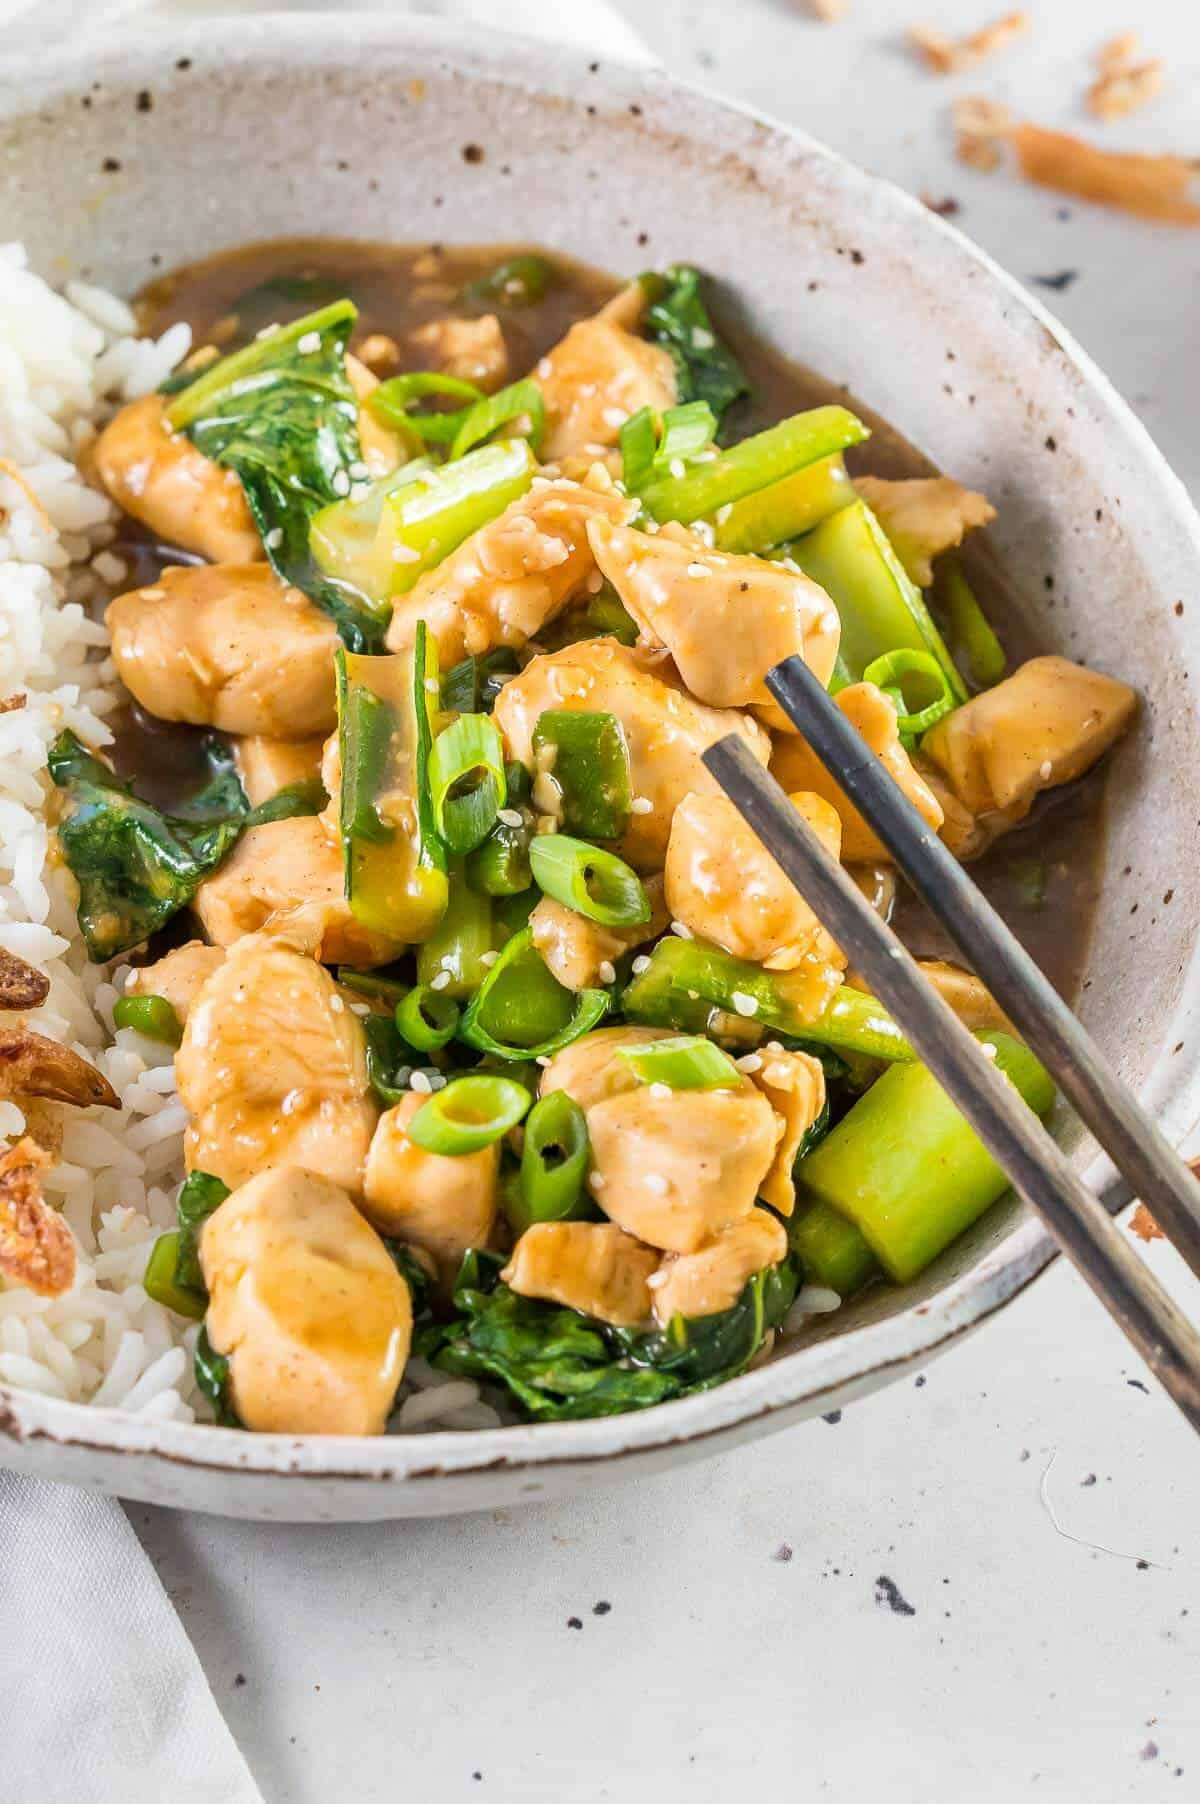 Chinese garlic chicken with shallots and chops on side